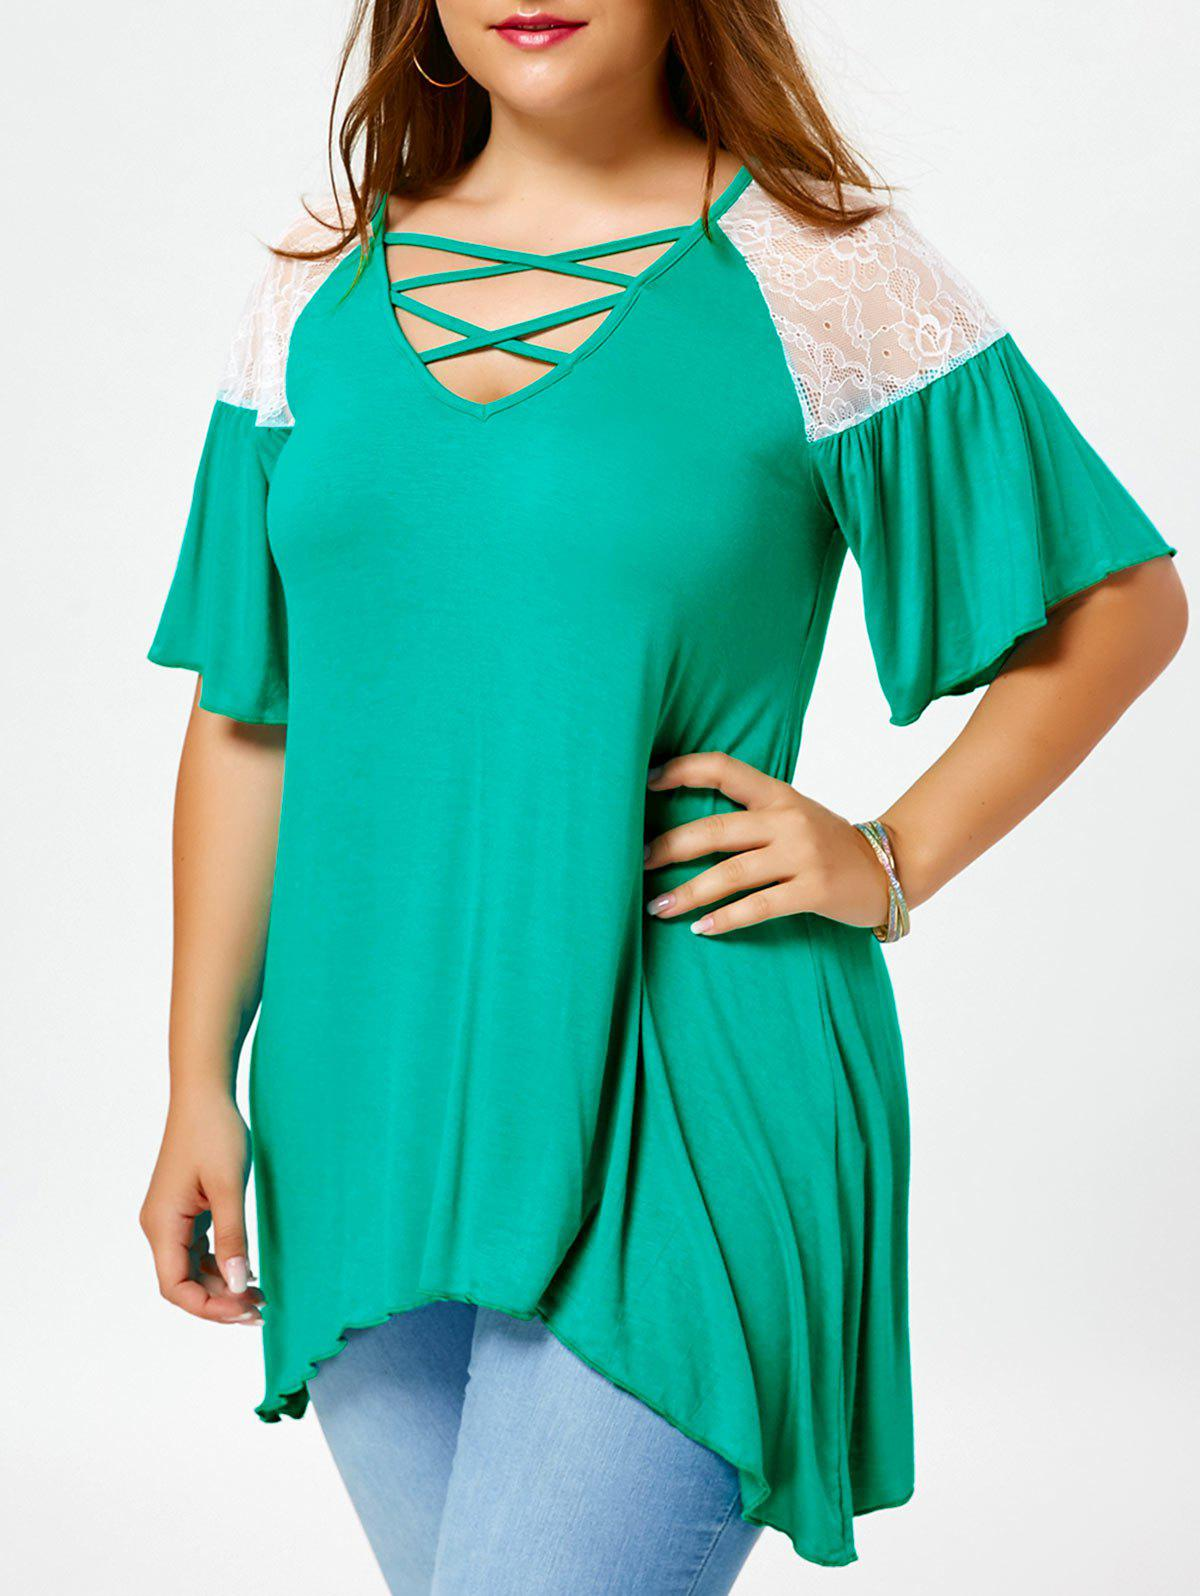 Criss Cross Drop Shoulder Plus Size Tunic T-ShirtWOMEN<br><br>Size: 4XL; Color: GREEN; Material: Polyester,Spandex; Shirt Length: Regular; Sleeve Length: Half; Collar: V-Neck; Style: Casual; Season: Fall,Spring,Summer; Sleeve Type: Flare Sleeve; Embellishment: Lace; Pattern Type: Solid; Elasticity: Elastic; Weight: 0.2600kg; Package Contents: 1 x T-Shirt;